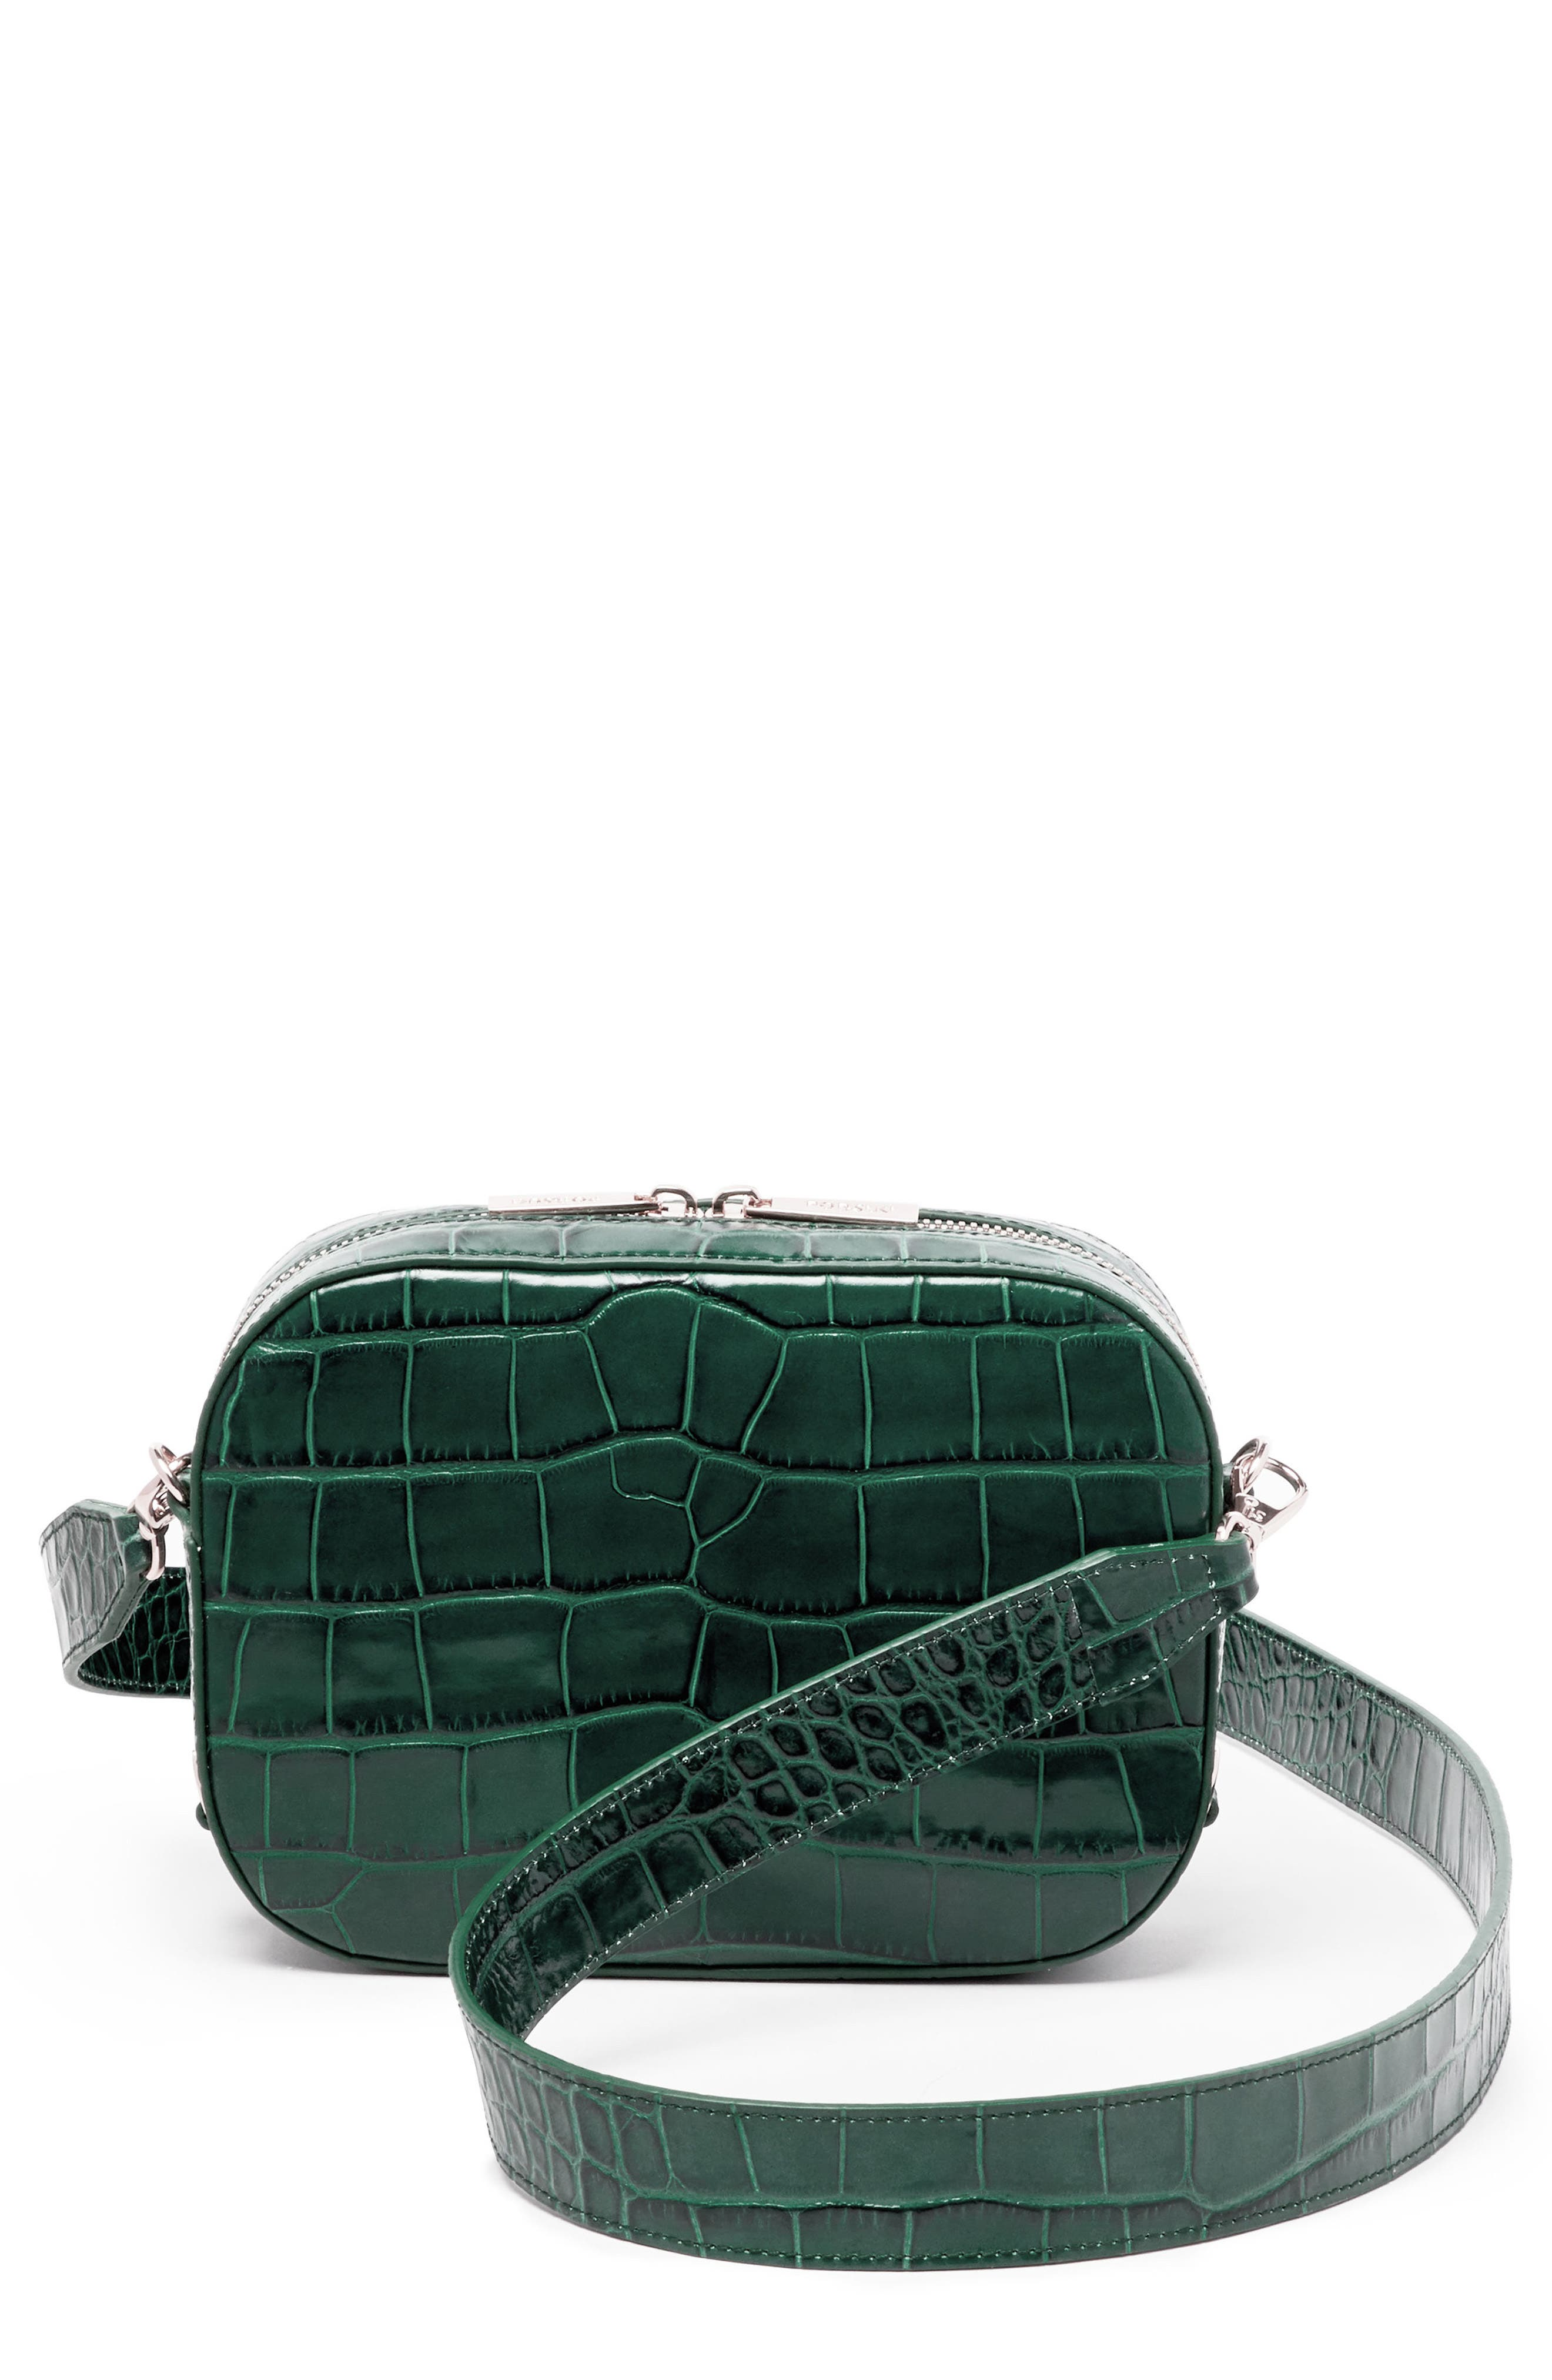 Croc Embossed Bigger Leather Camera Bag,                             Main thumbnail 1, color,                             300